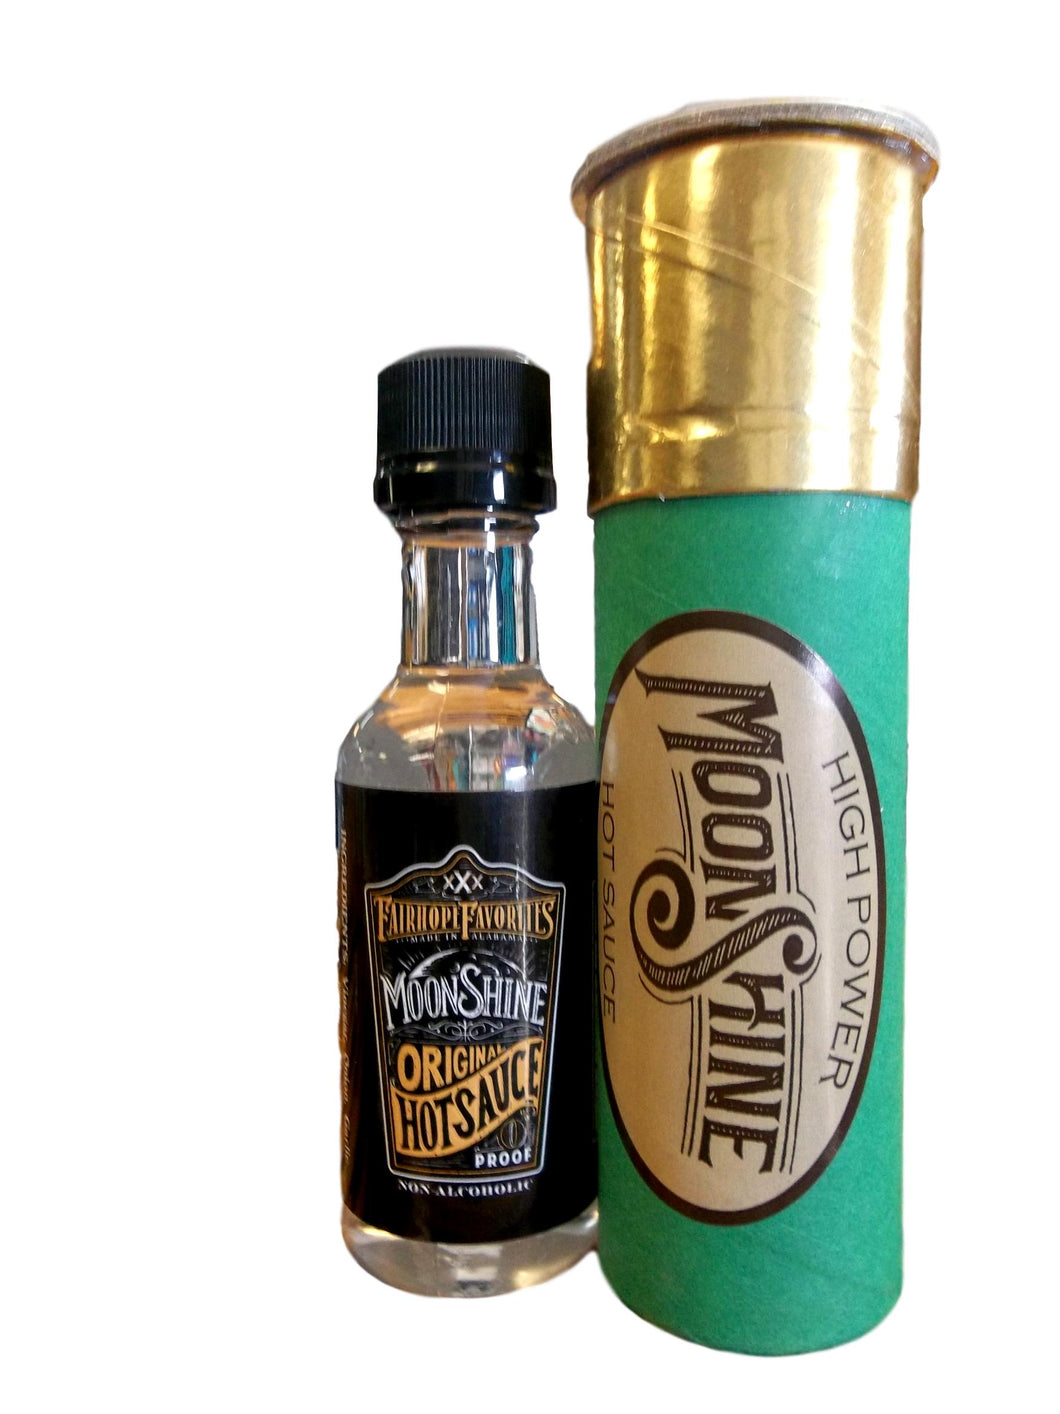 Original Moonshine Hot Sauce